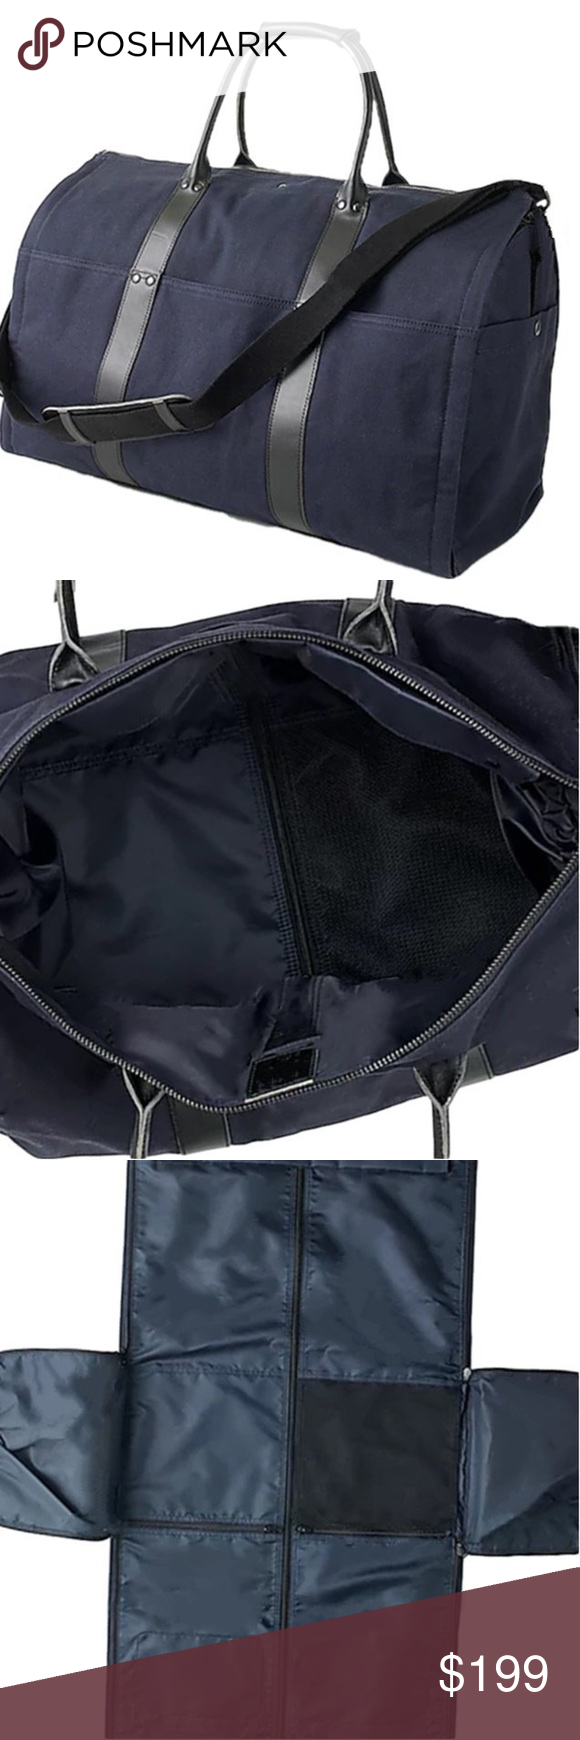 J Crew Ludlow Garment Duffle Bag Navy Black H3260 248 New 13 1 2 H X 21 3 4 W 11 D 7 Handle